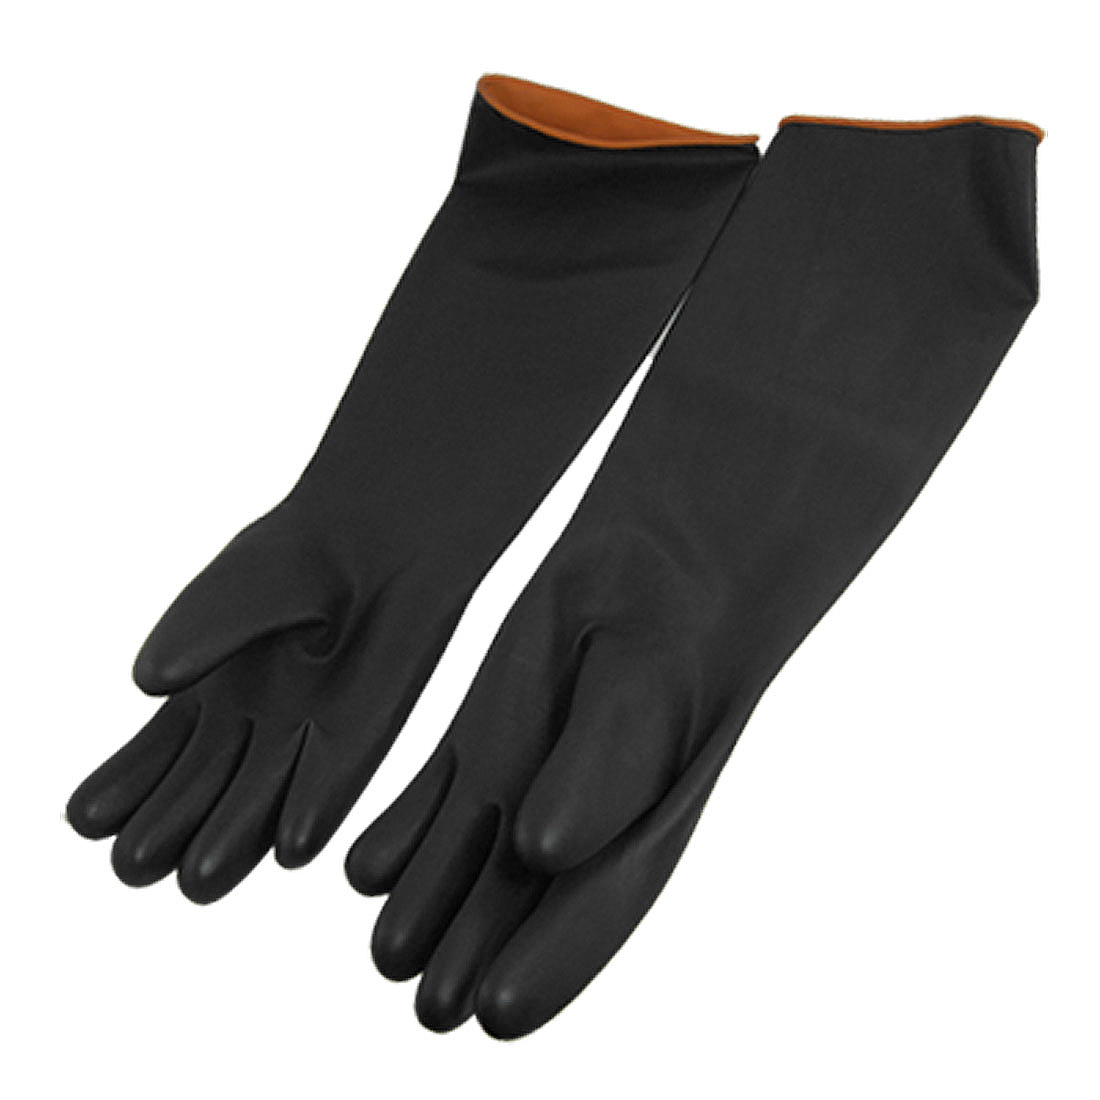 20.5 Inch Long Protective Industry Anti Chemical Acid Alkali Rubber Work Gloves